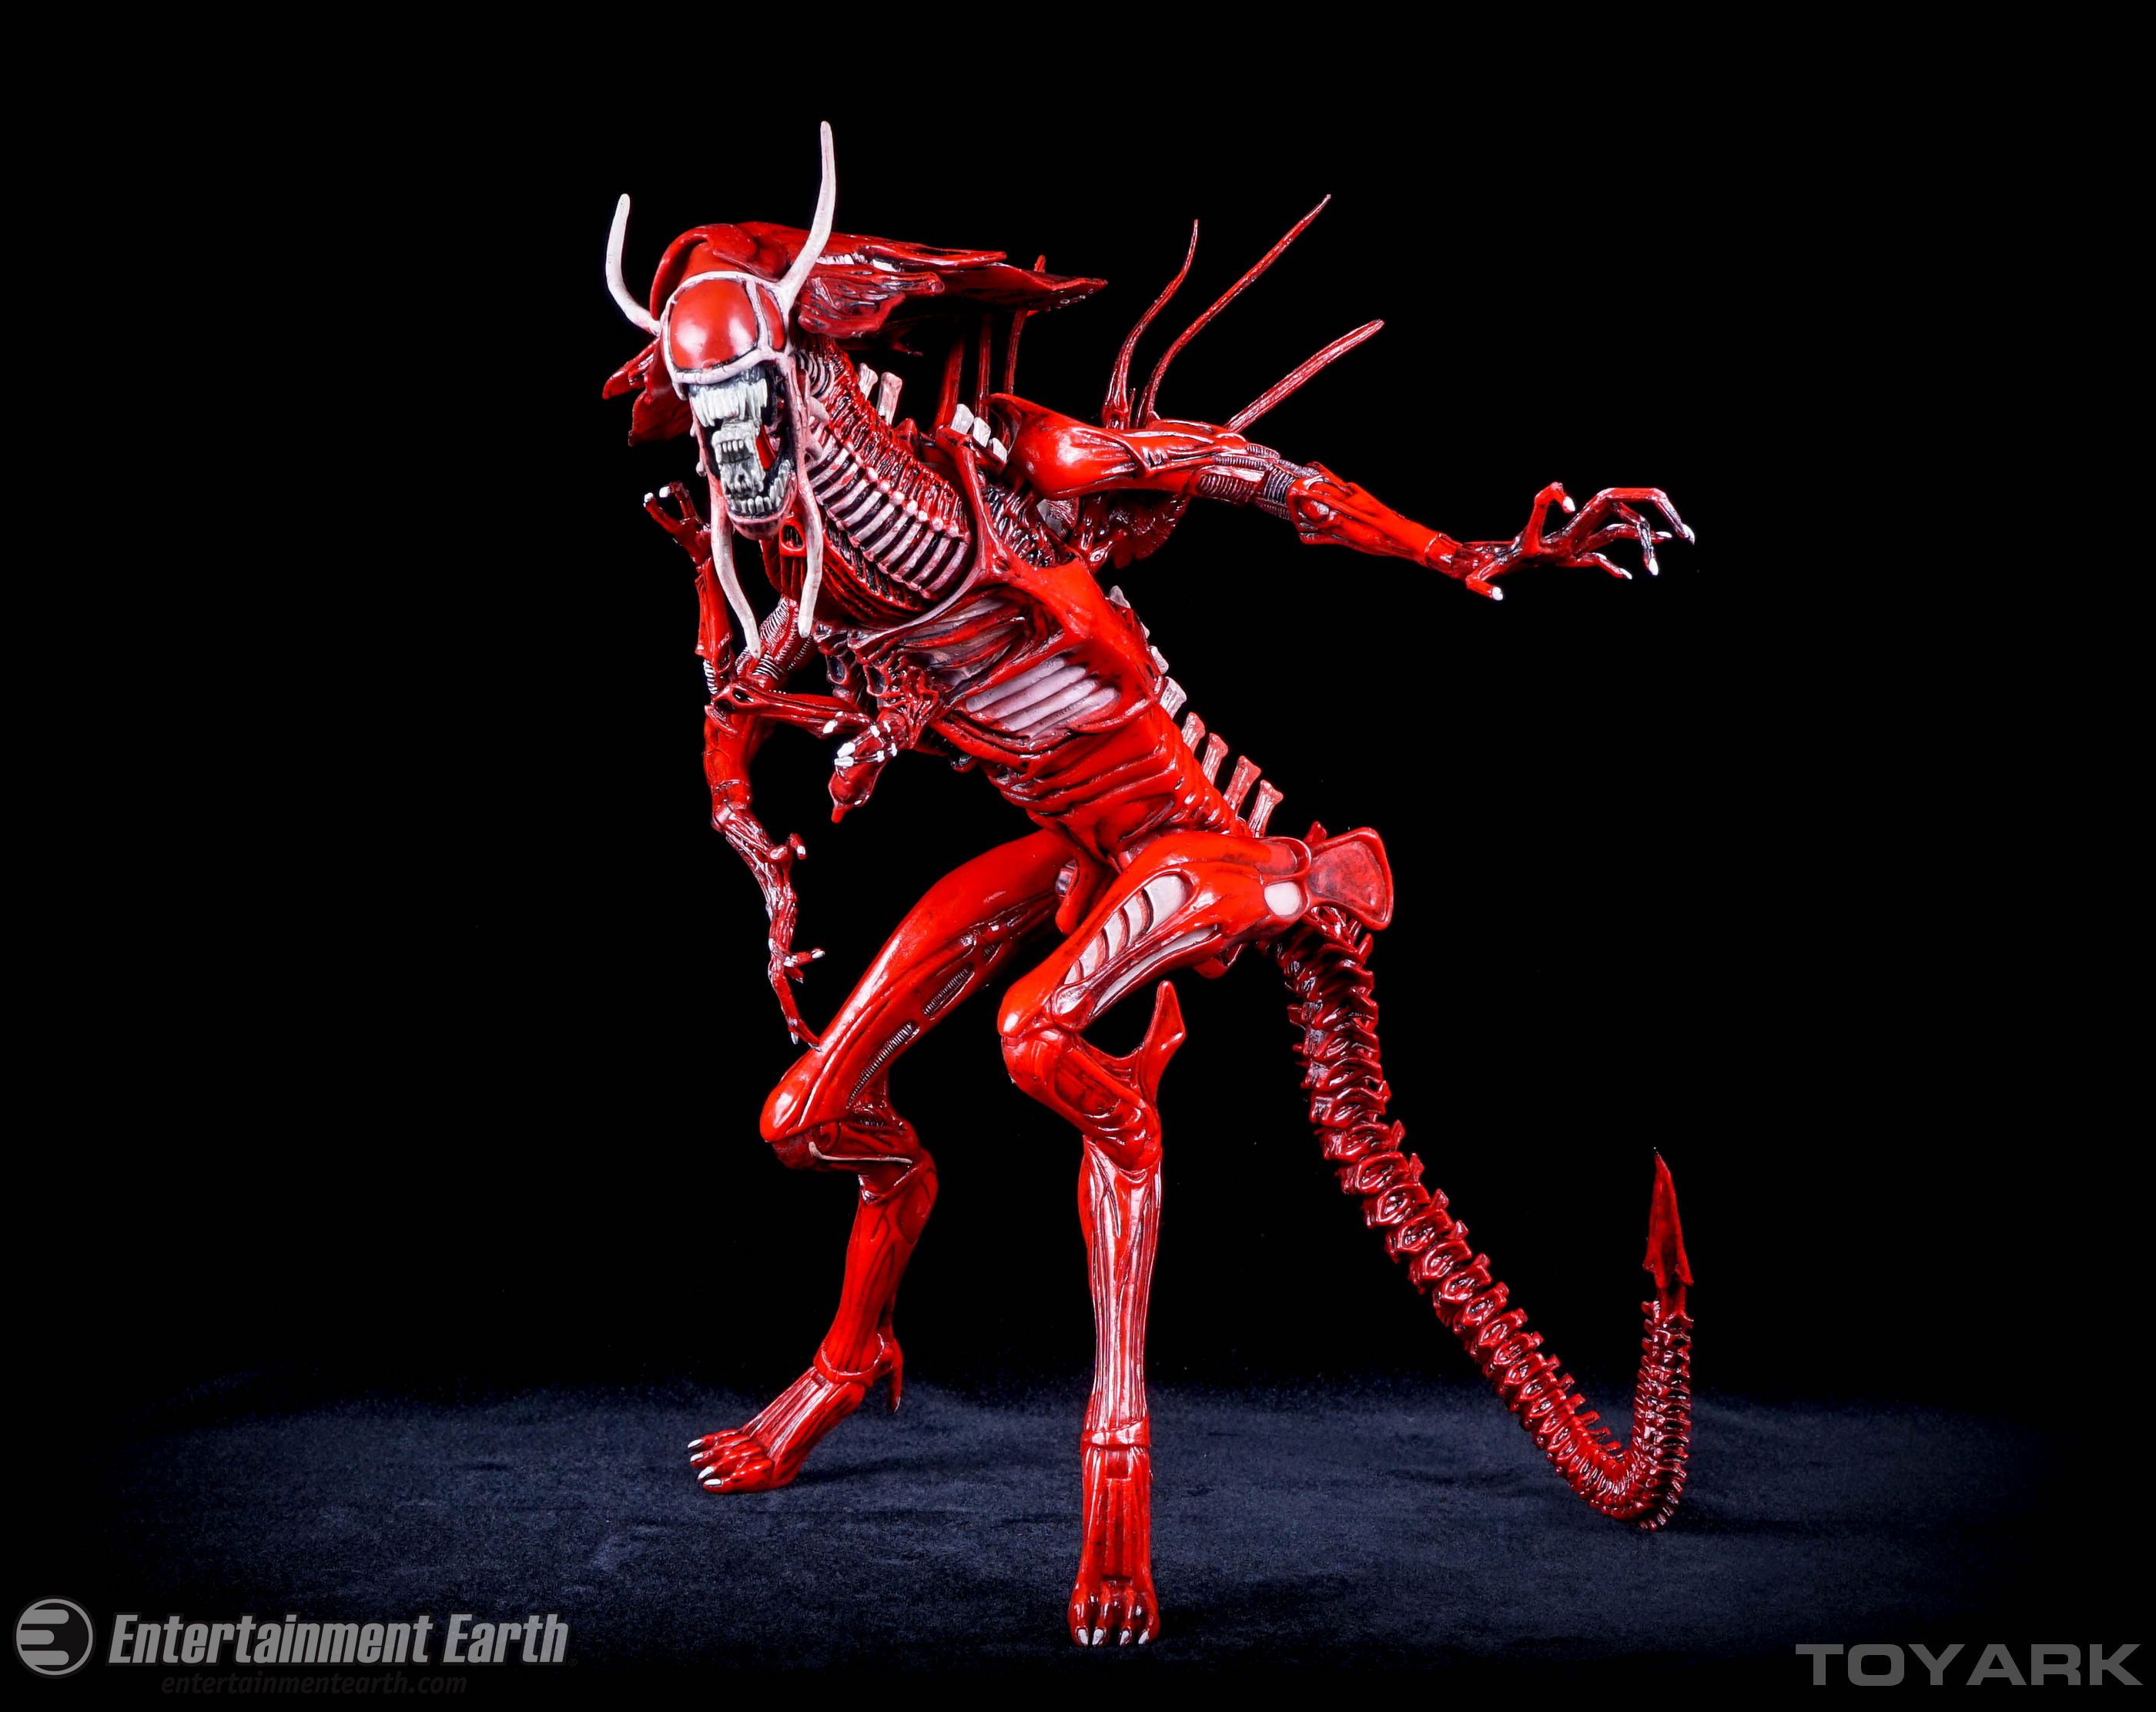 http://news.toyark.com/wp-content/uploads/sites/4/2015/12/NECA-Alien-Red-Queen-022.jpg